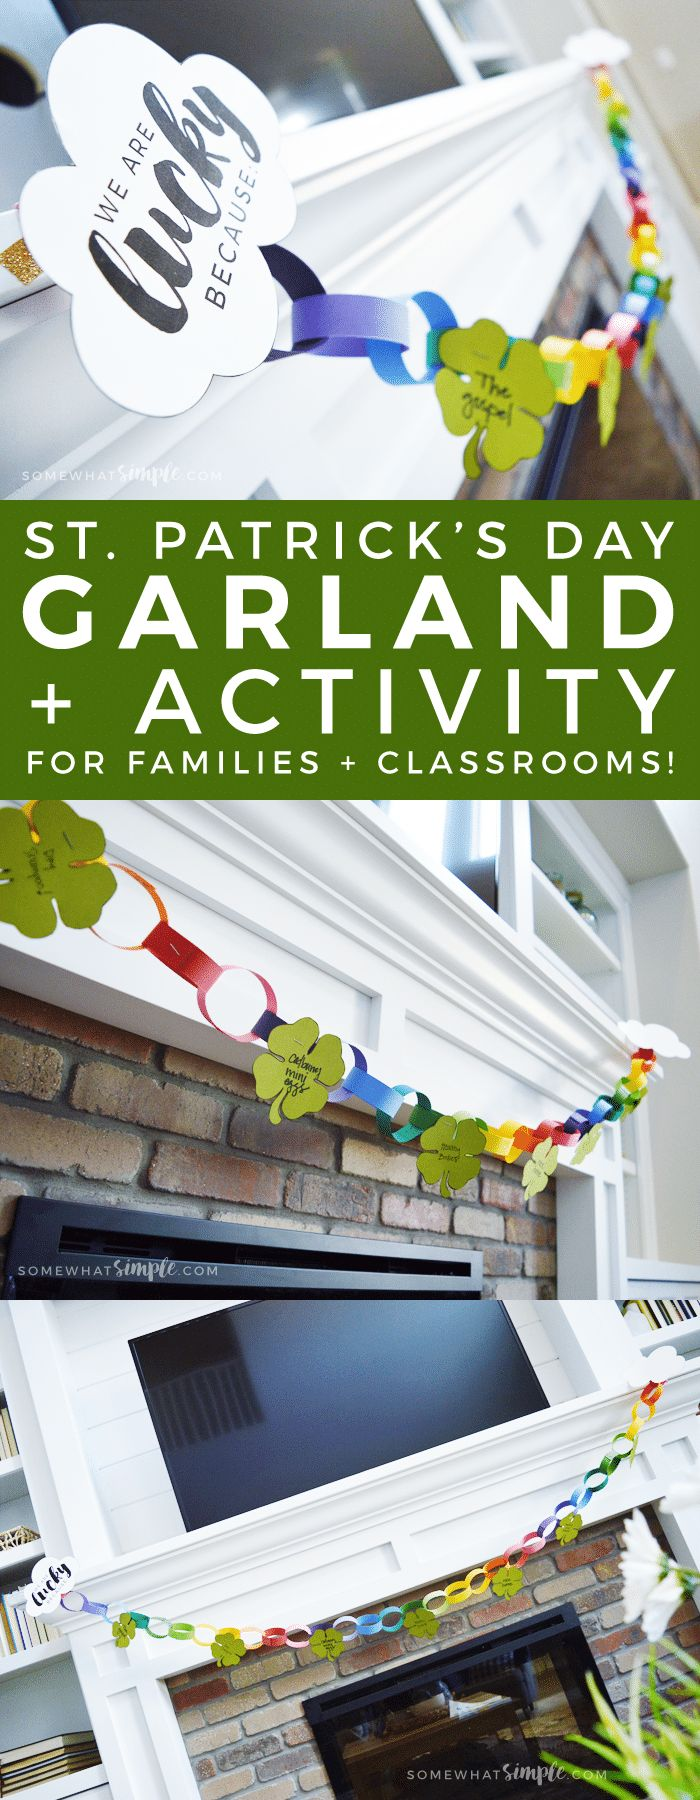 St. Patrick's Day Garland | Looking for a great St. Patrick's Day activity for your family or class? Then you're going to love this colorful + meaningful St. Patrick's Day Garland!